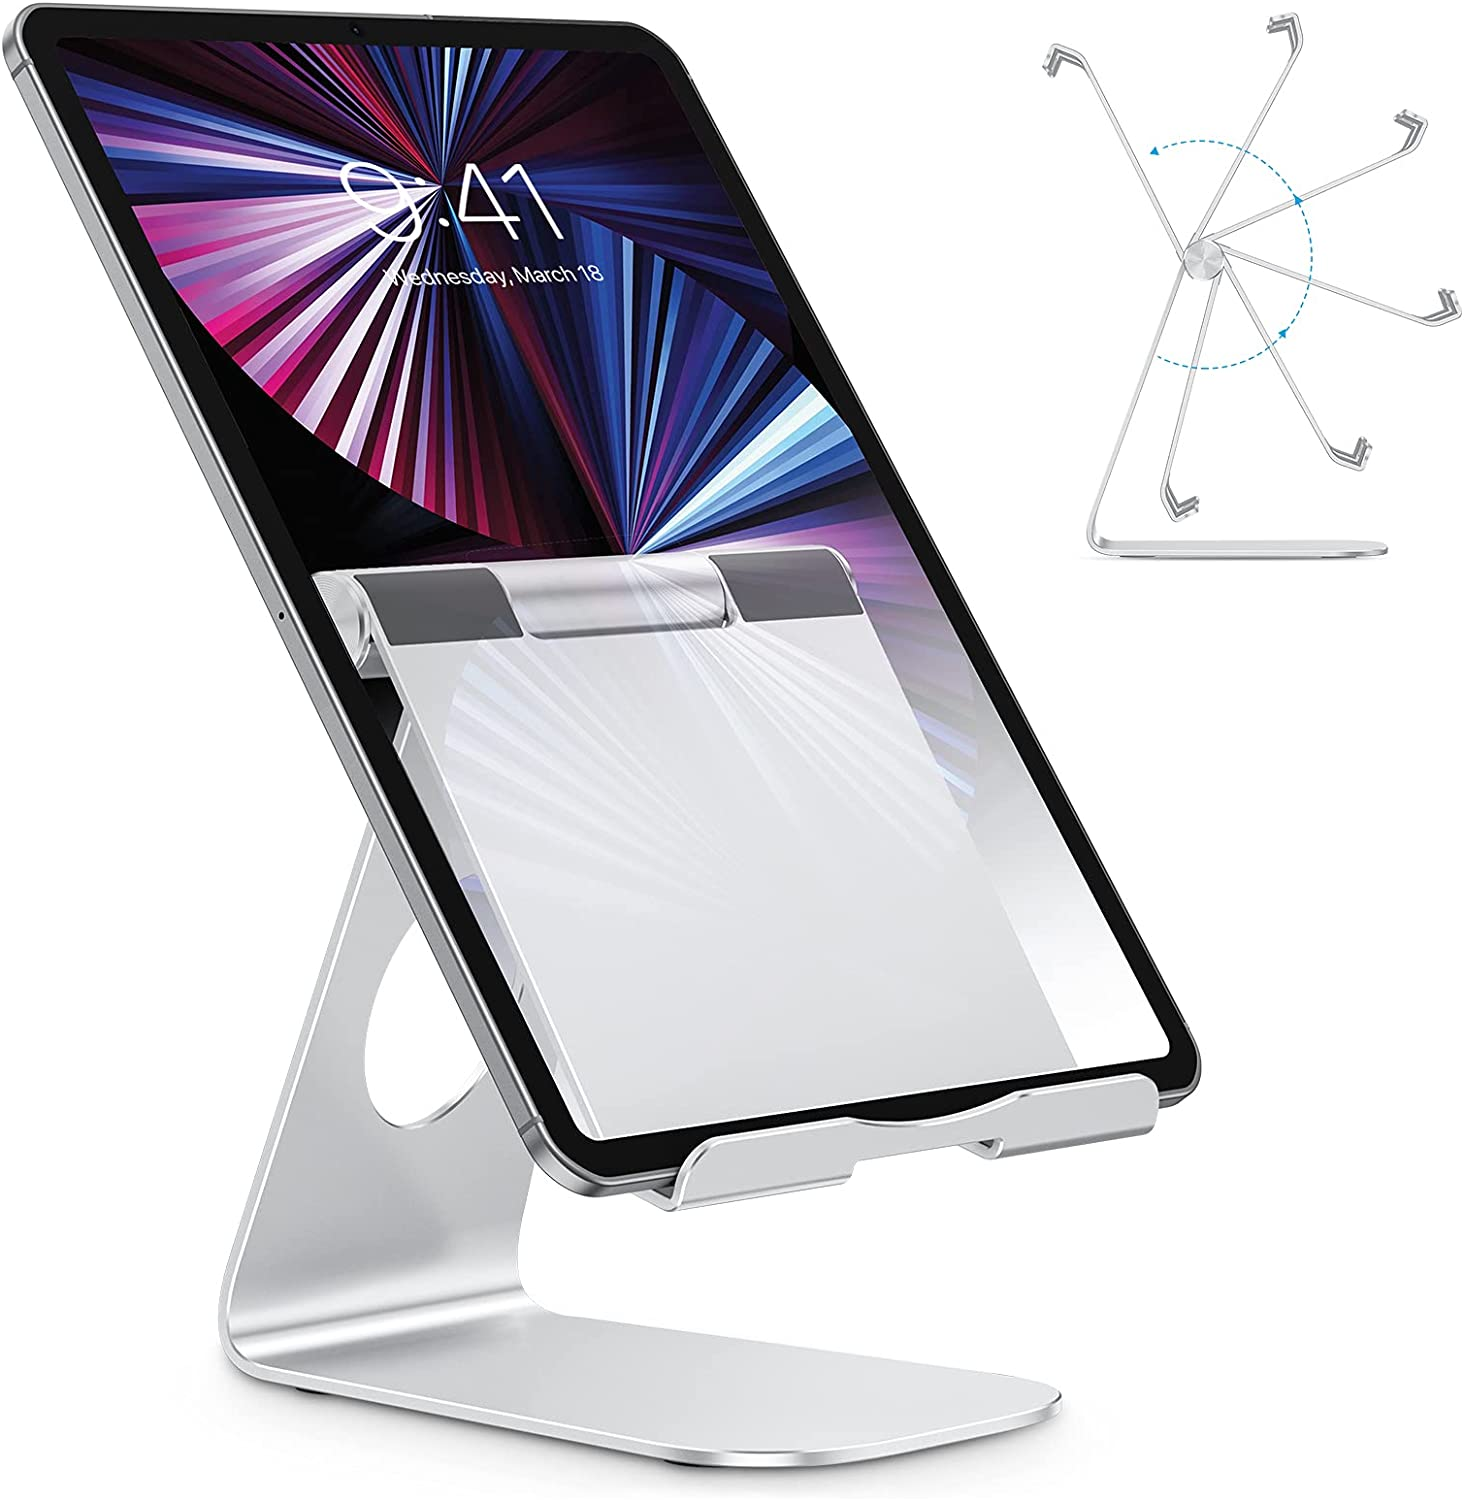 Omoton Adjustable Tablet Smartphone Stand $9.99 Coupon